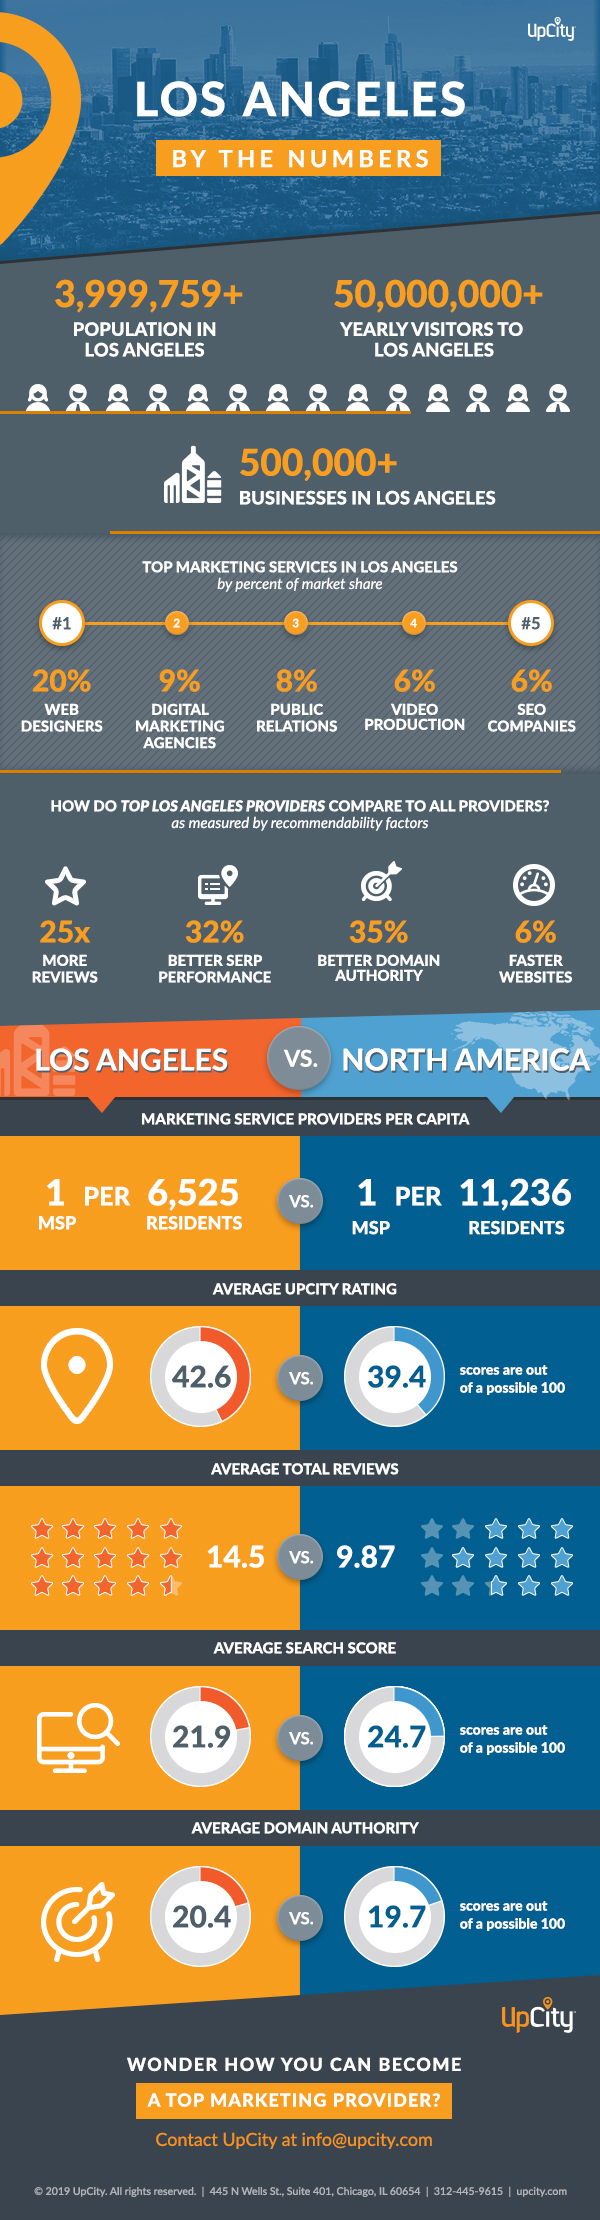 UpCity Los Angeles by the Numbers-Get Insights into Top Performing Marketers in Los Angeles